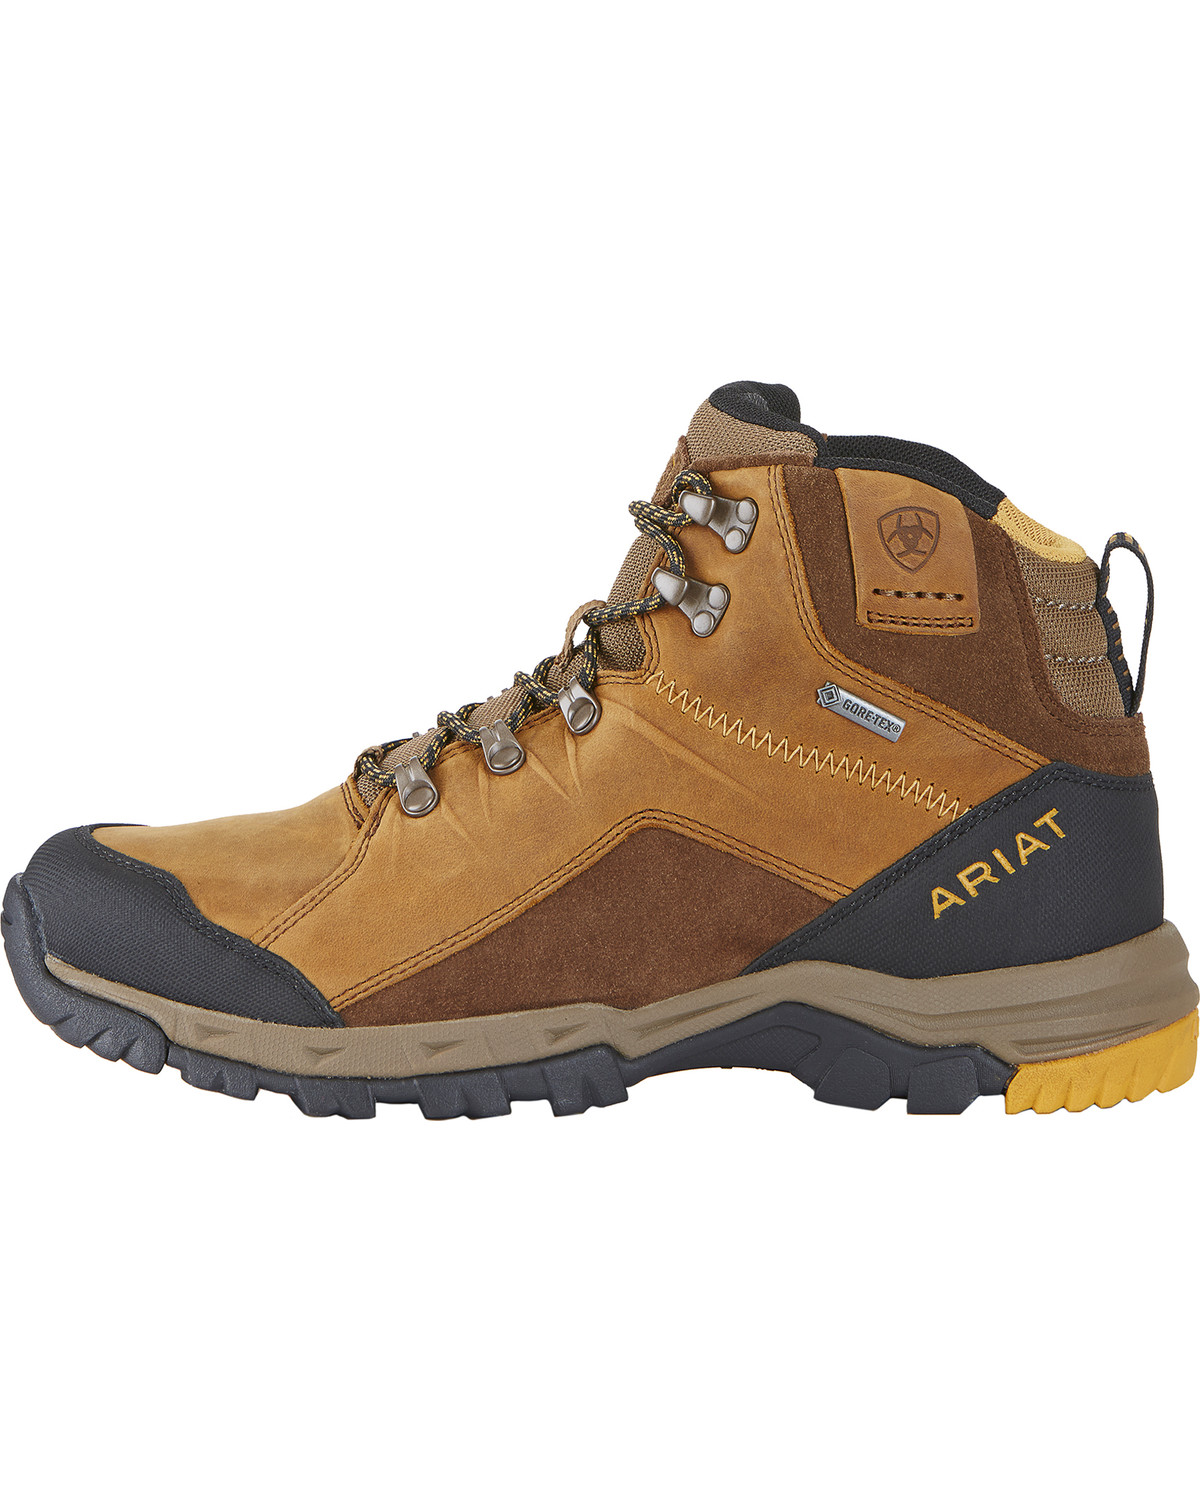 Ariat Men's Skyline Mid GTX Frontier Hiking Boots | Sheplers